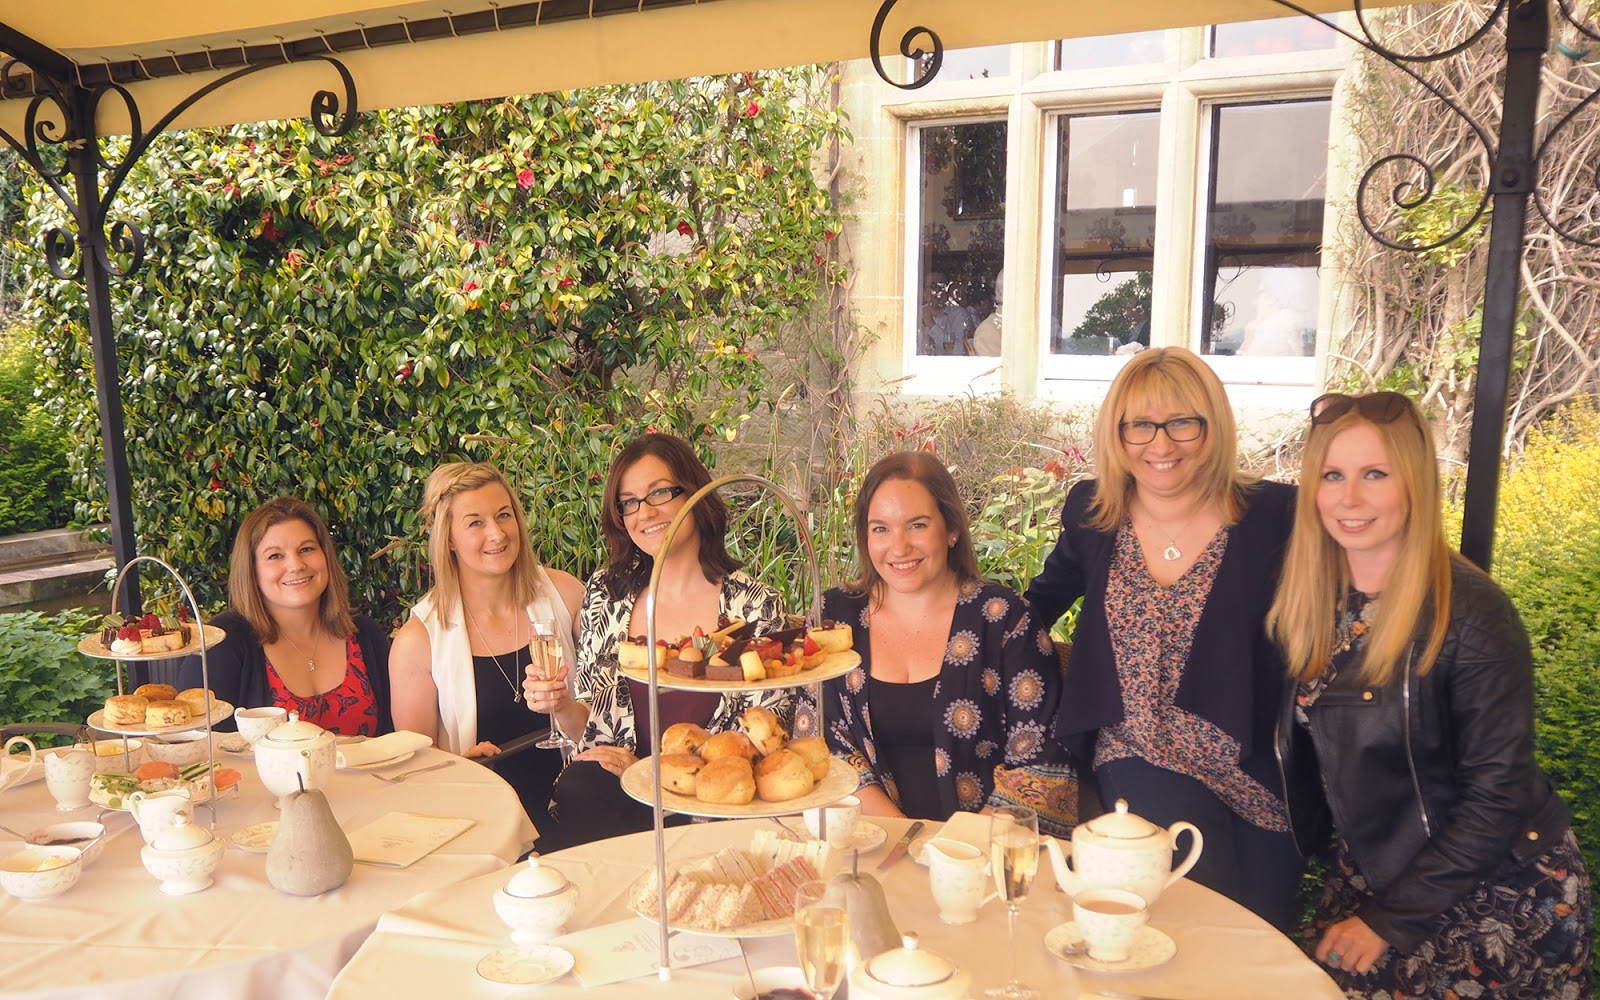 Afternoon tea review at South Lodge in Horsham - group photo